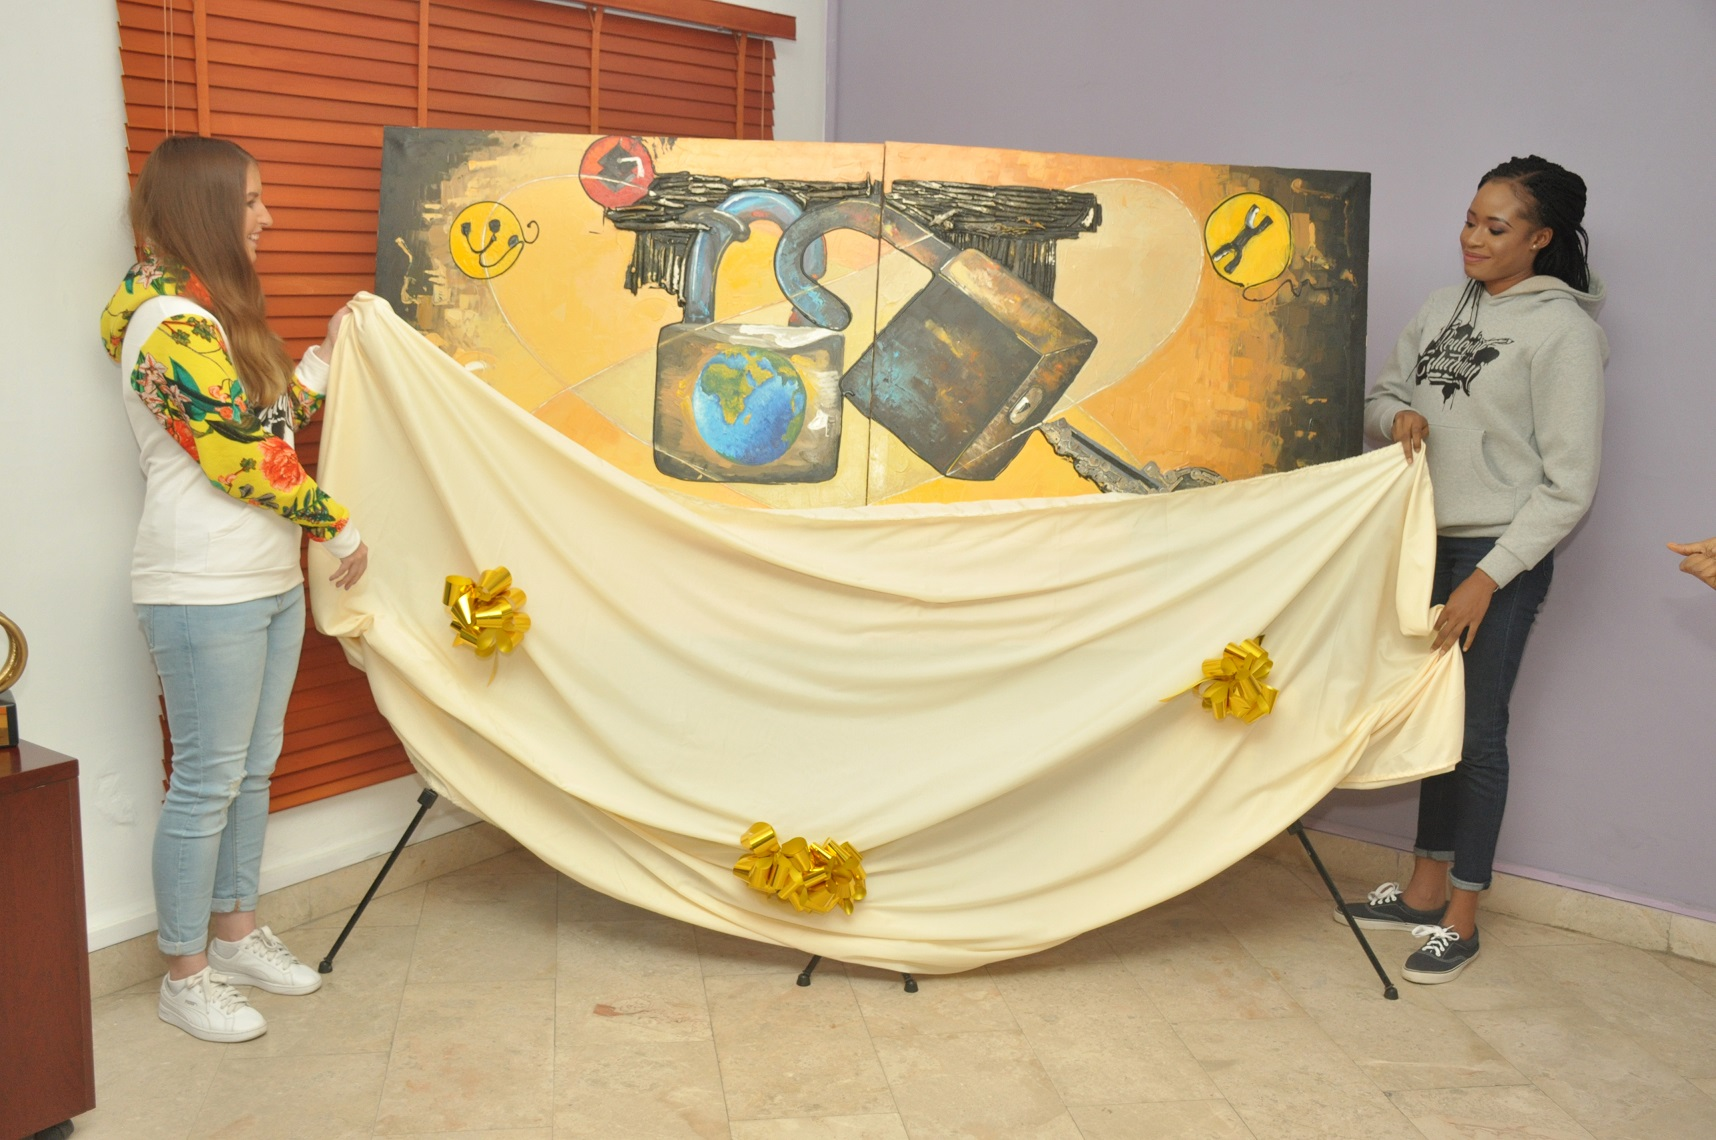 The unveiling of the artwork